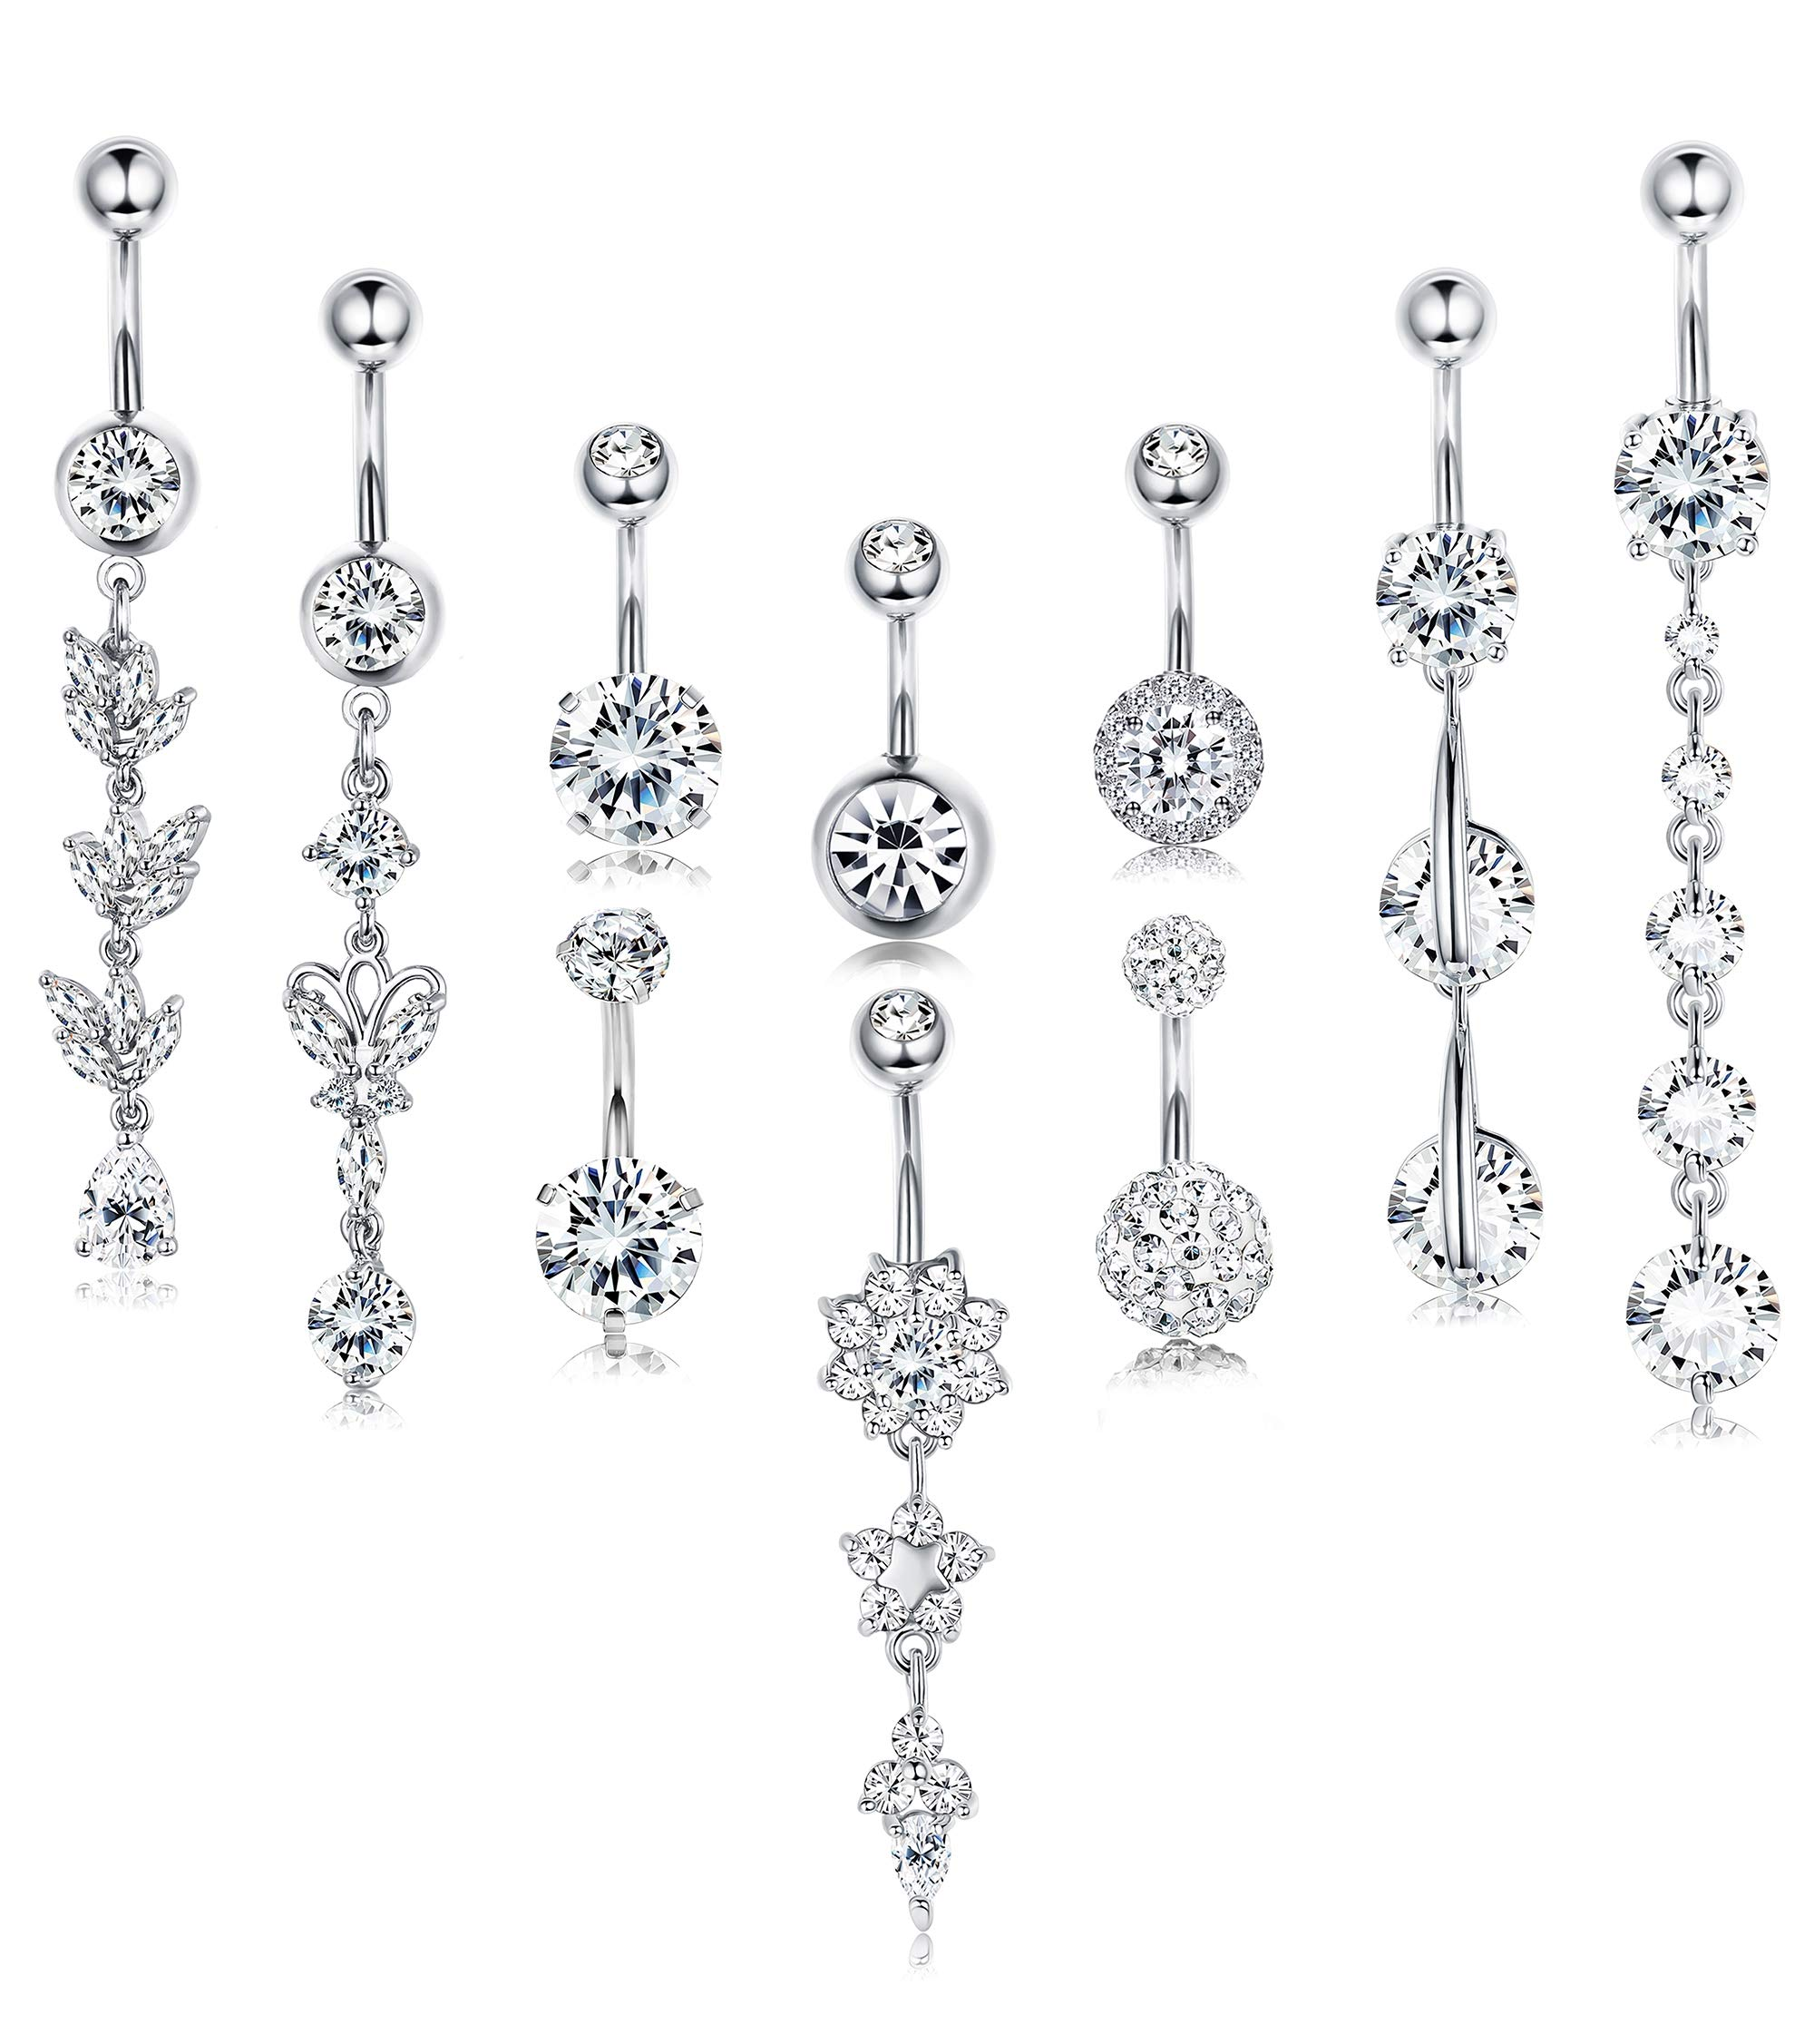 Finrezio 10PCS 14G Stainless Steel Dangle Belly Button Ring for Women Girls Navel Clear CZ Inlay Body Piercing Jewelry Barbell by Finrezio